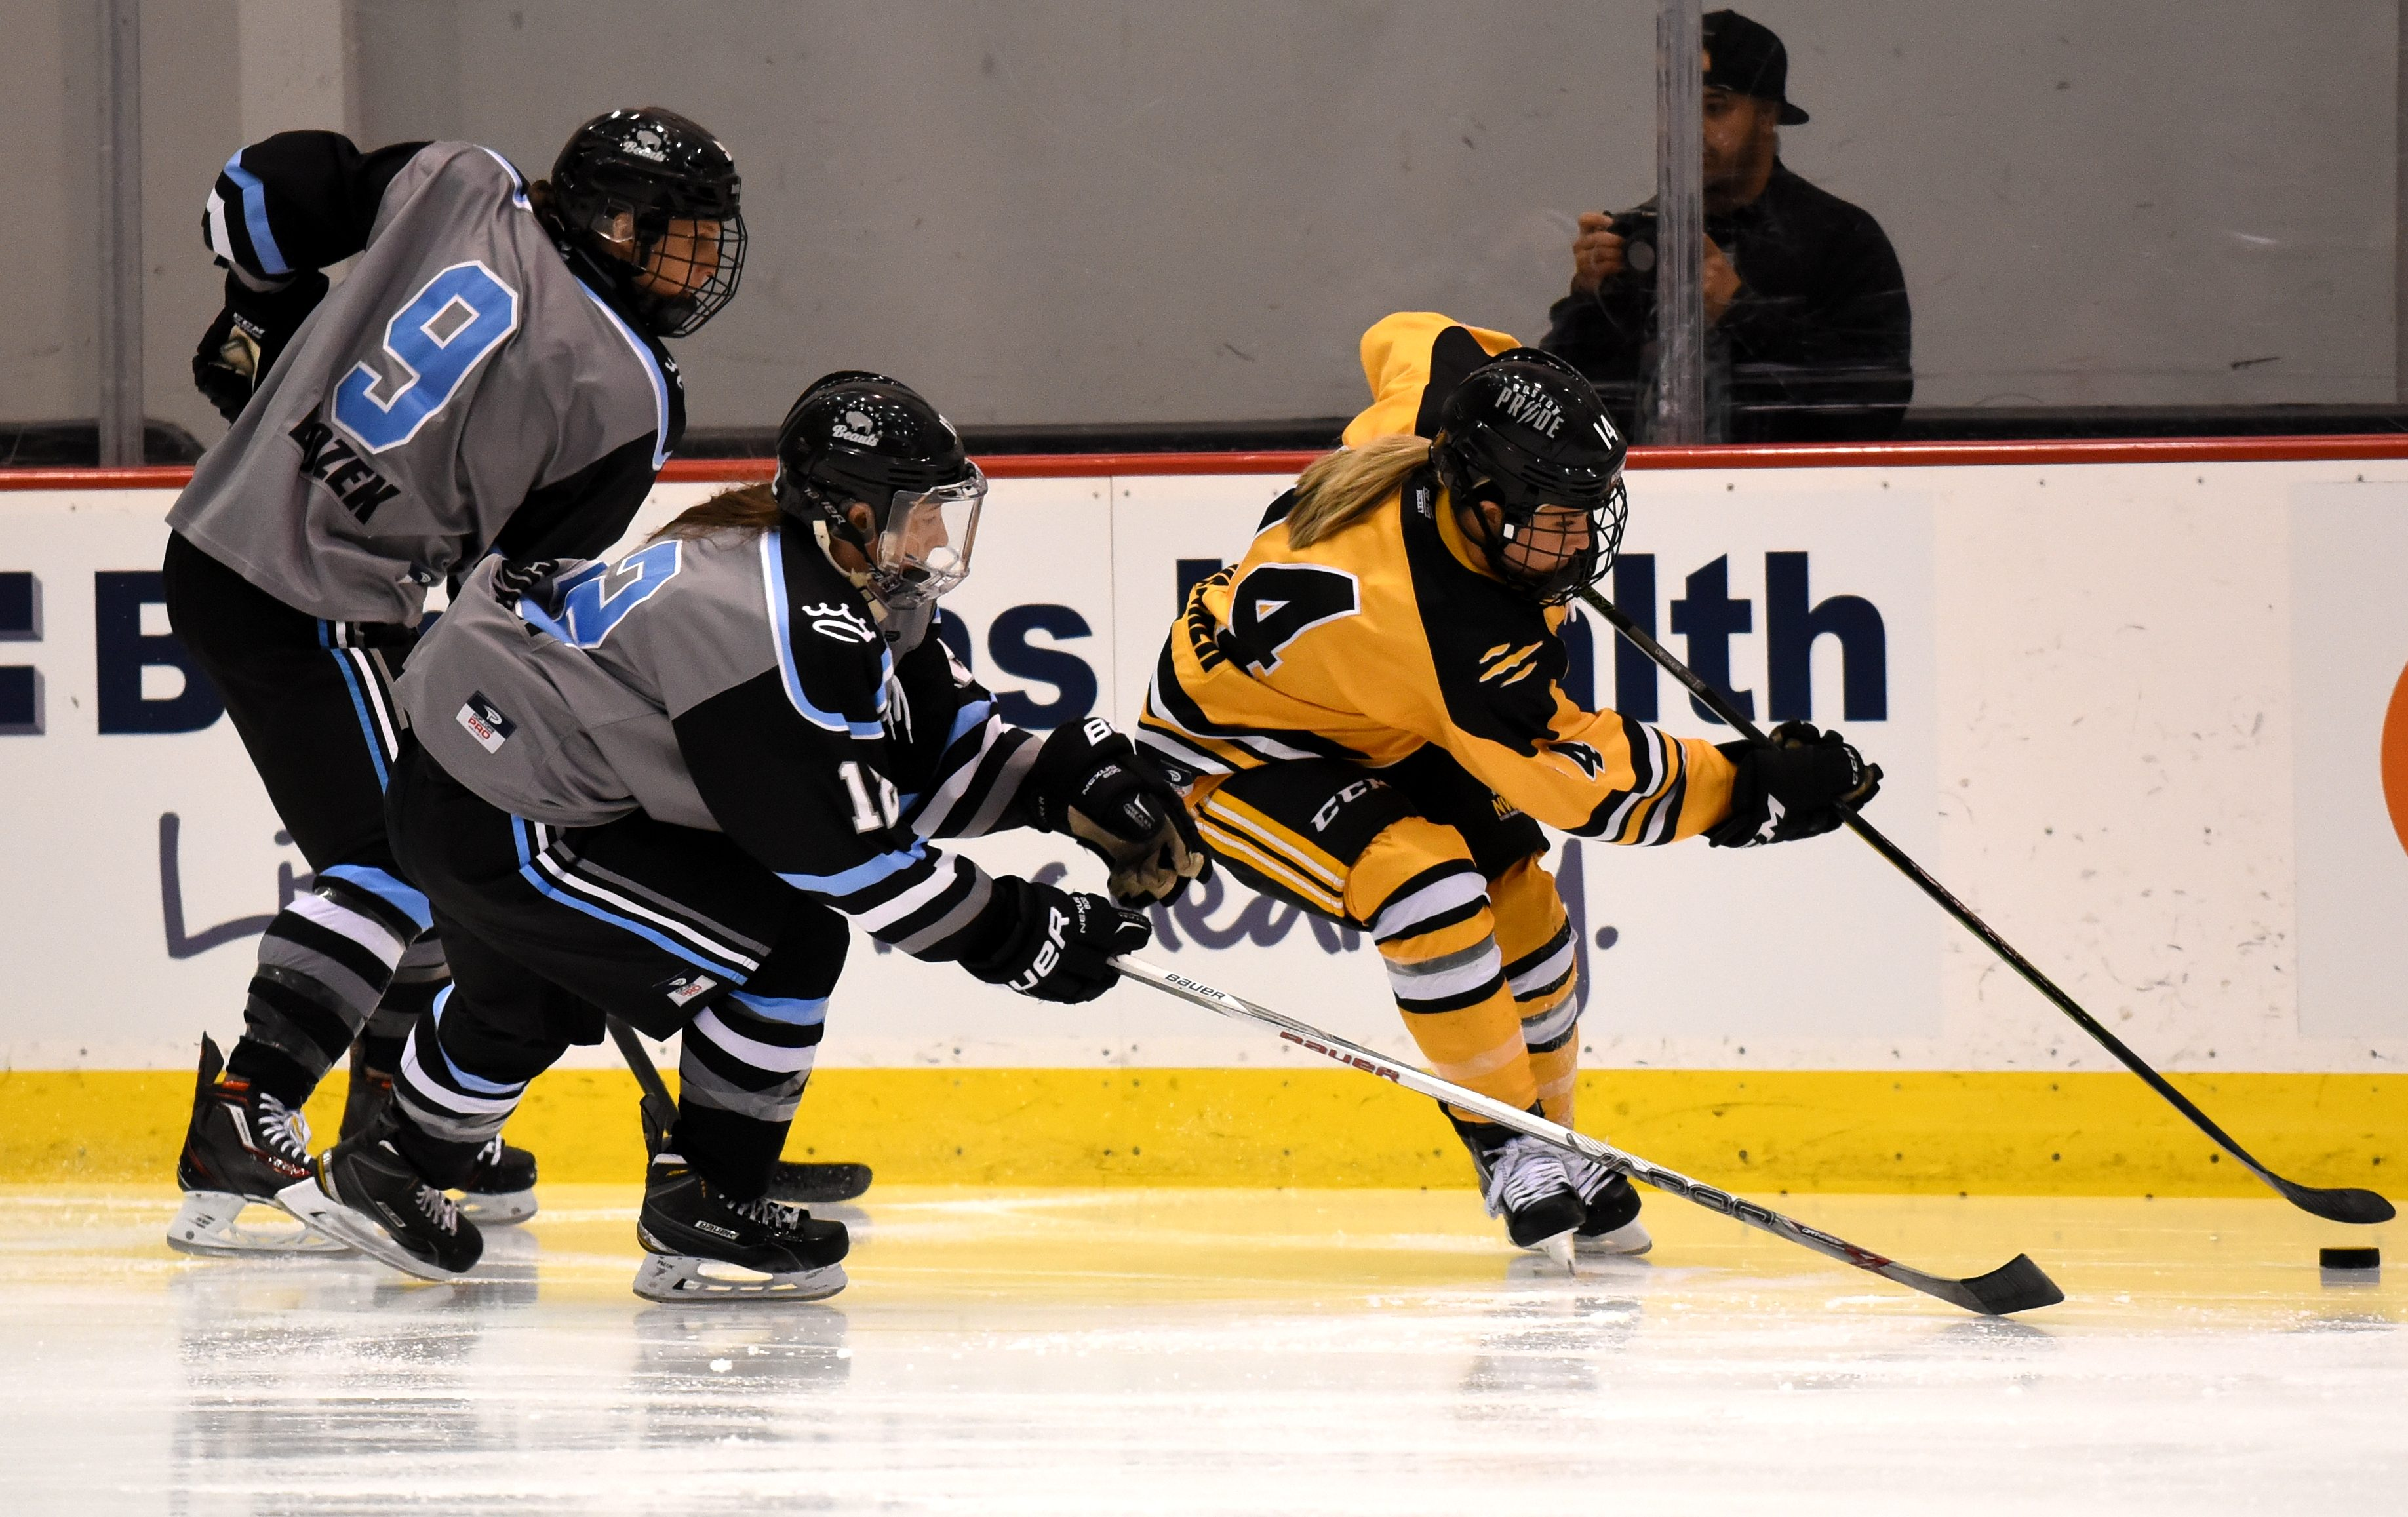 NWHL Isobel Cup Finals Game 1: Great Hockey, OT Heartbreaker